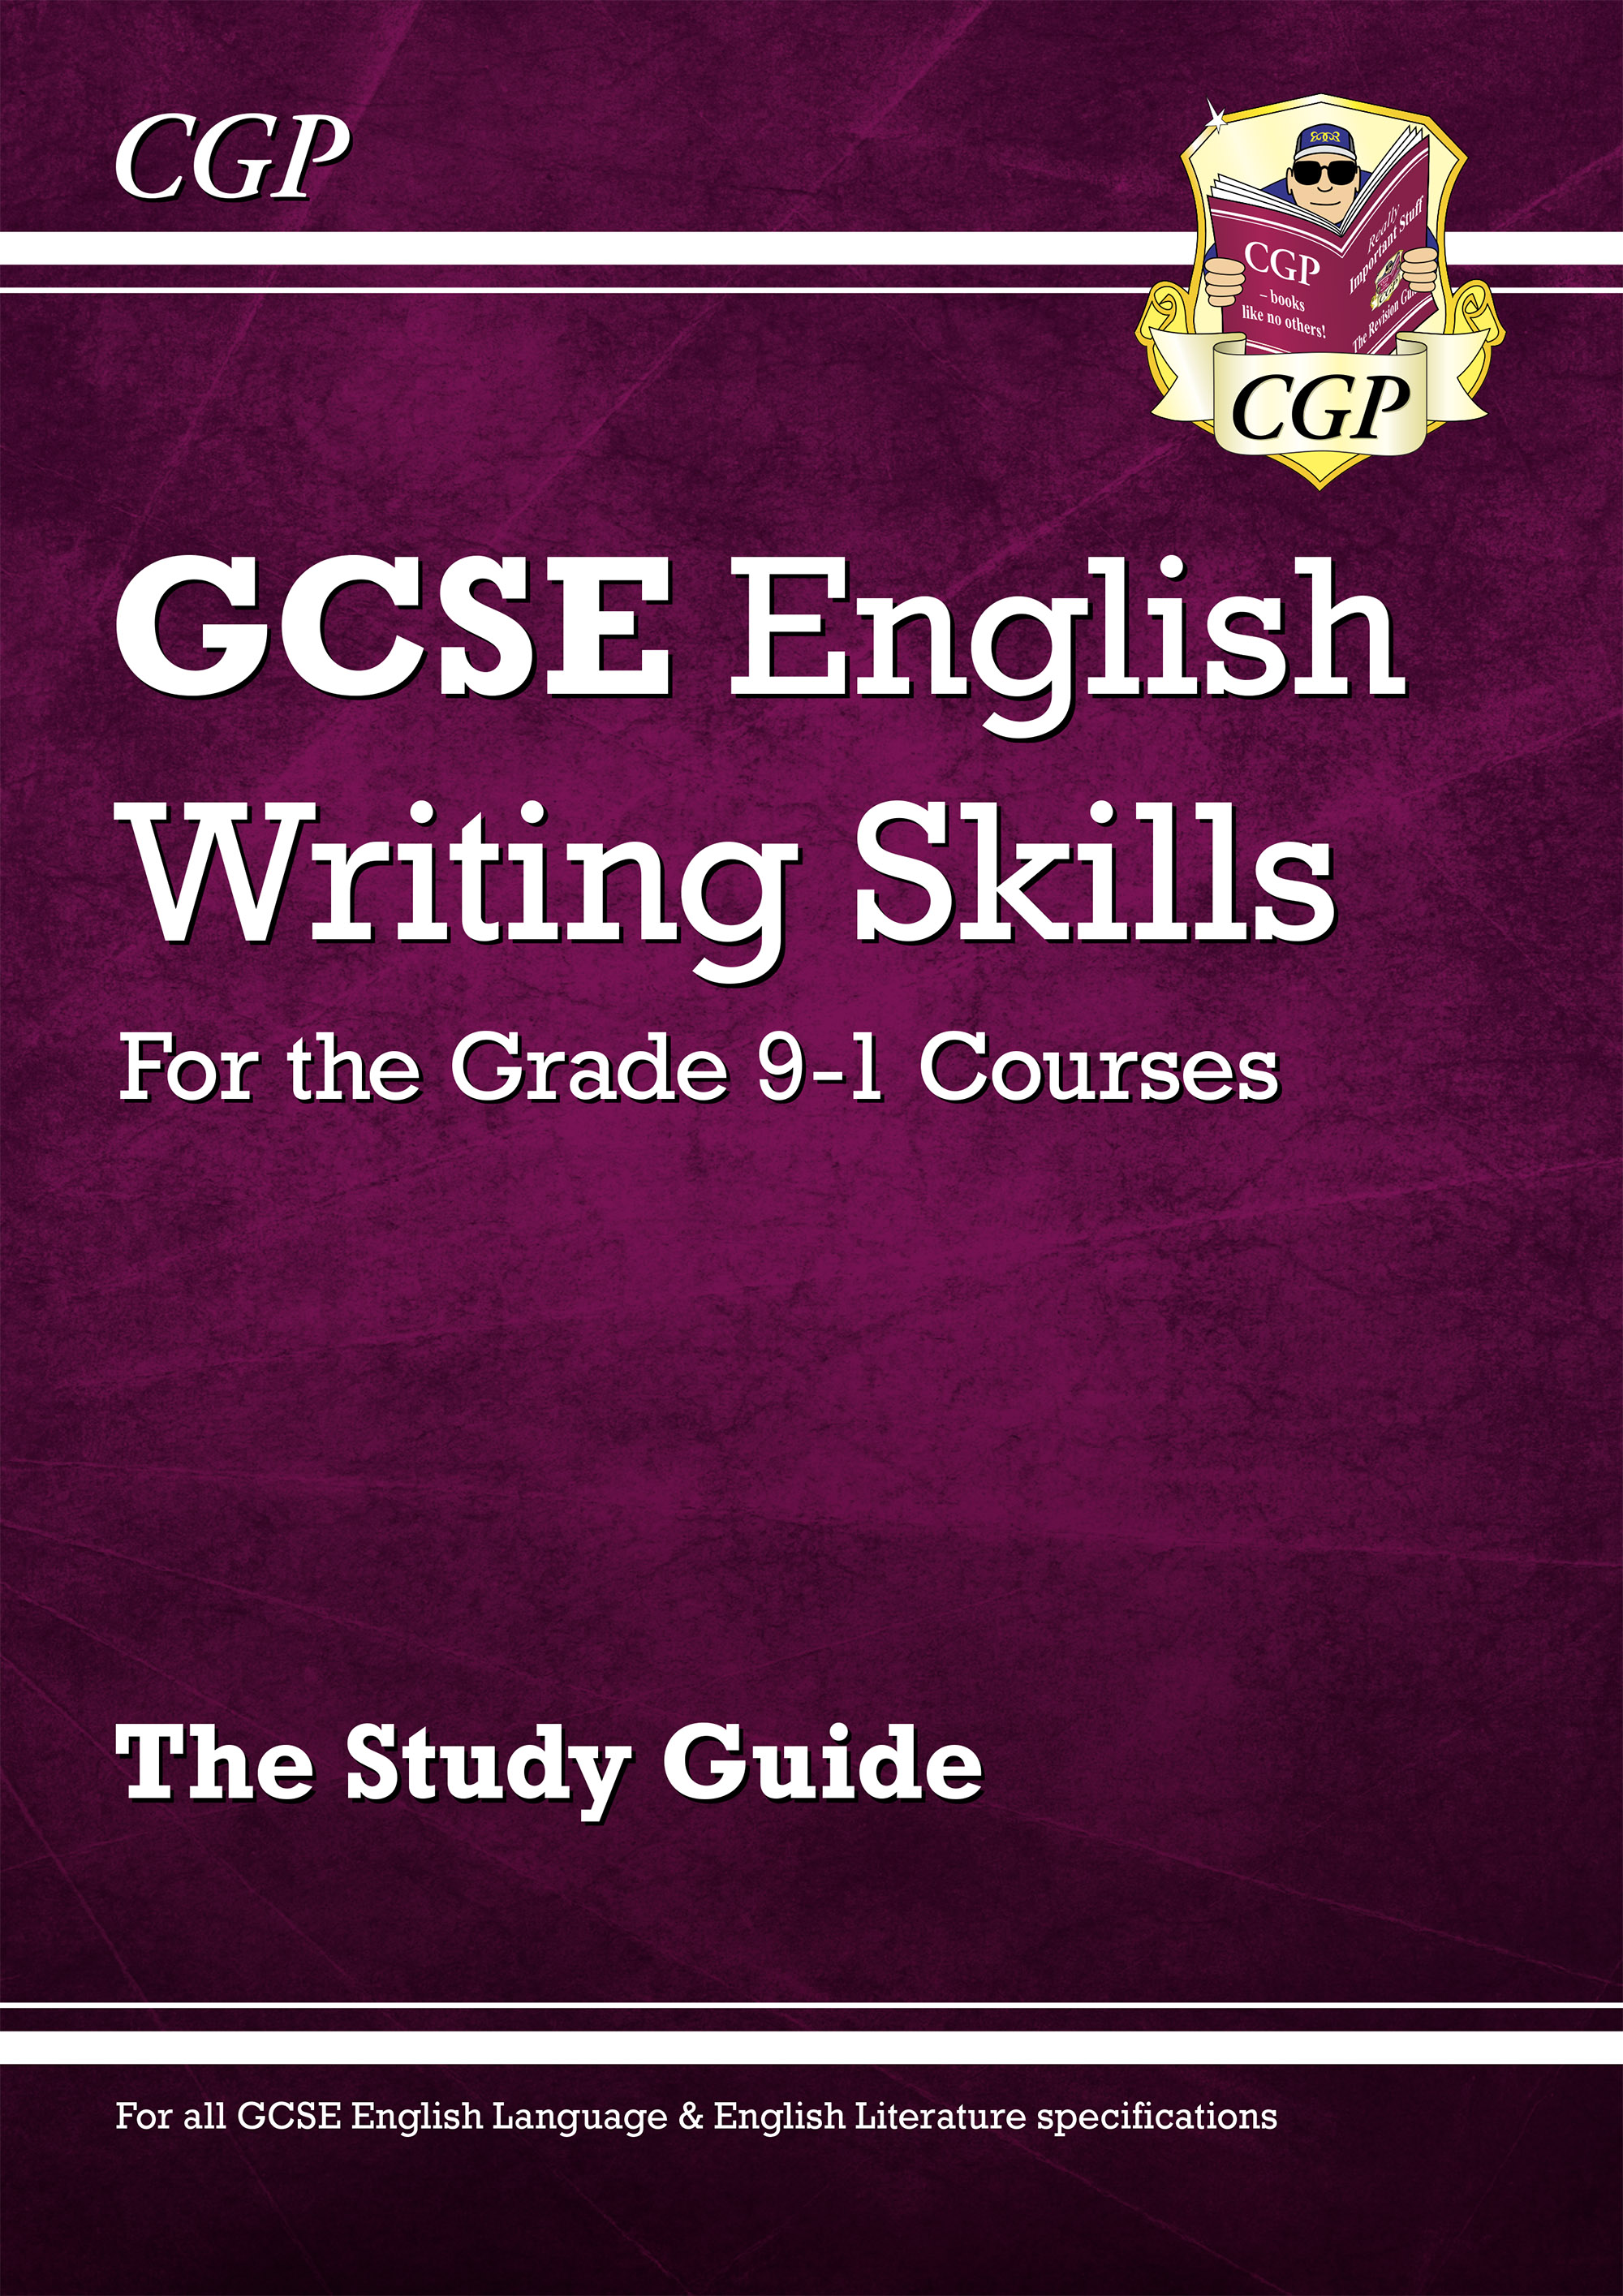 EER42DK - GCSE English Writing Skills Study Guide - for the Grade 9-1 Courses